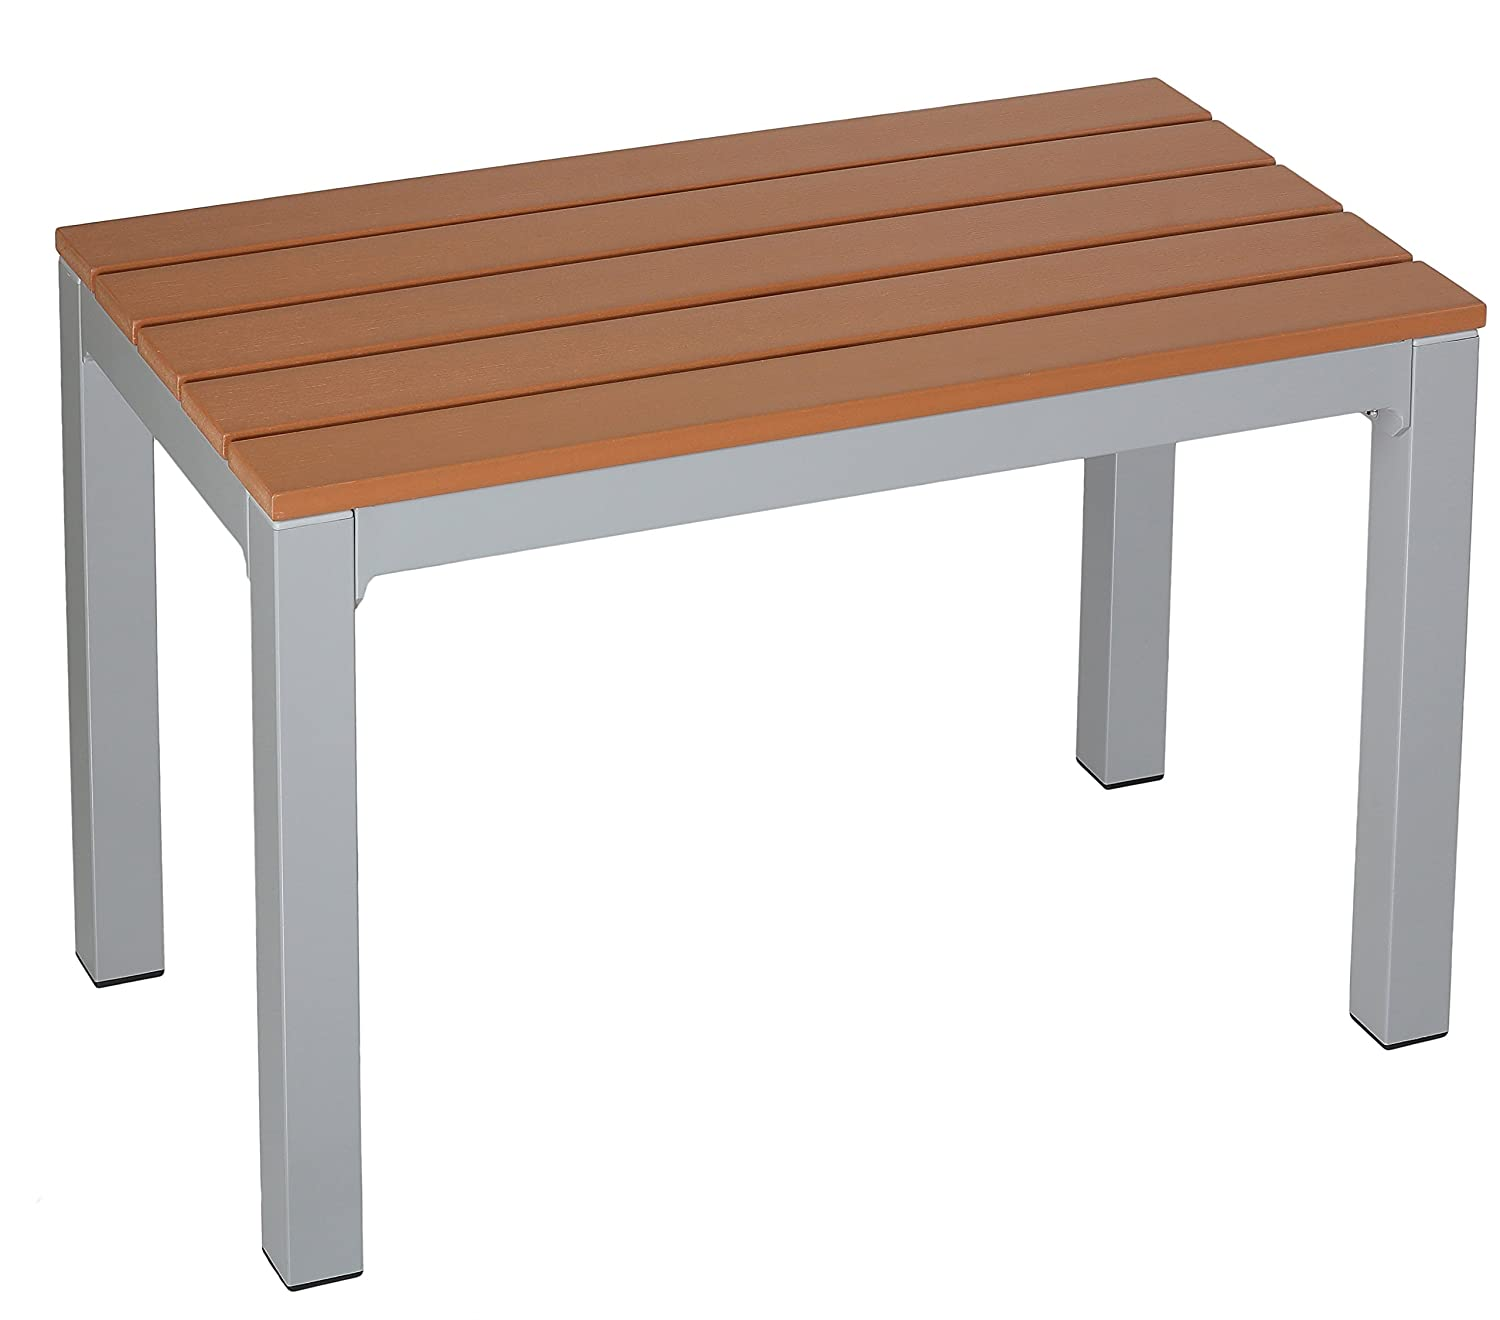 Avery aluminum outdoor bench in poly wood silver teak best Aluminum benches